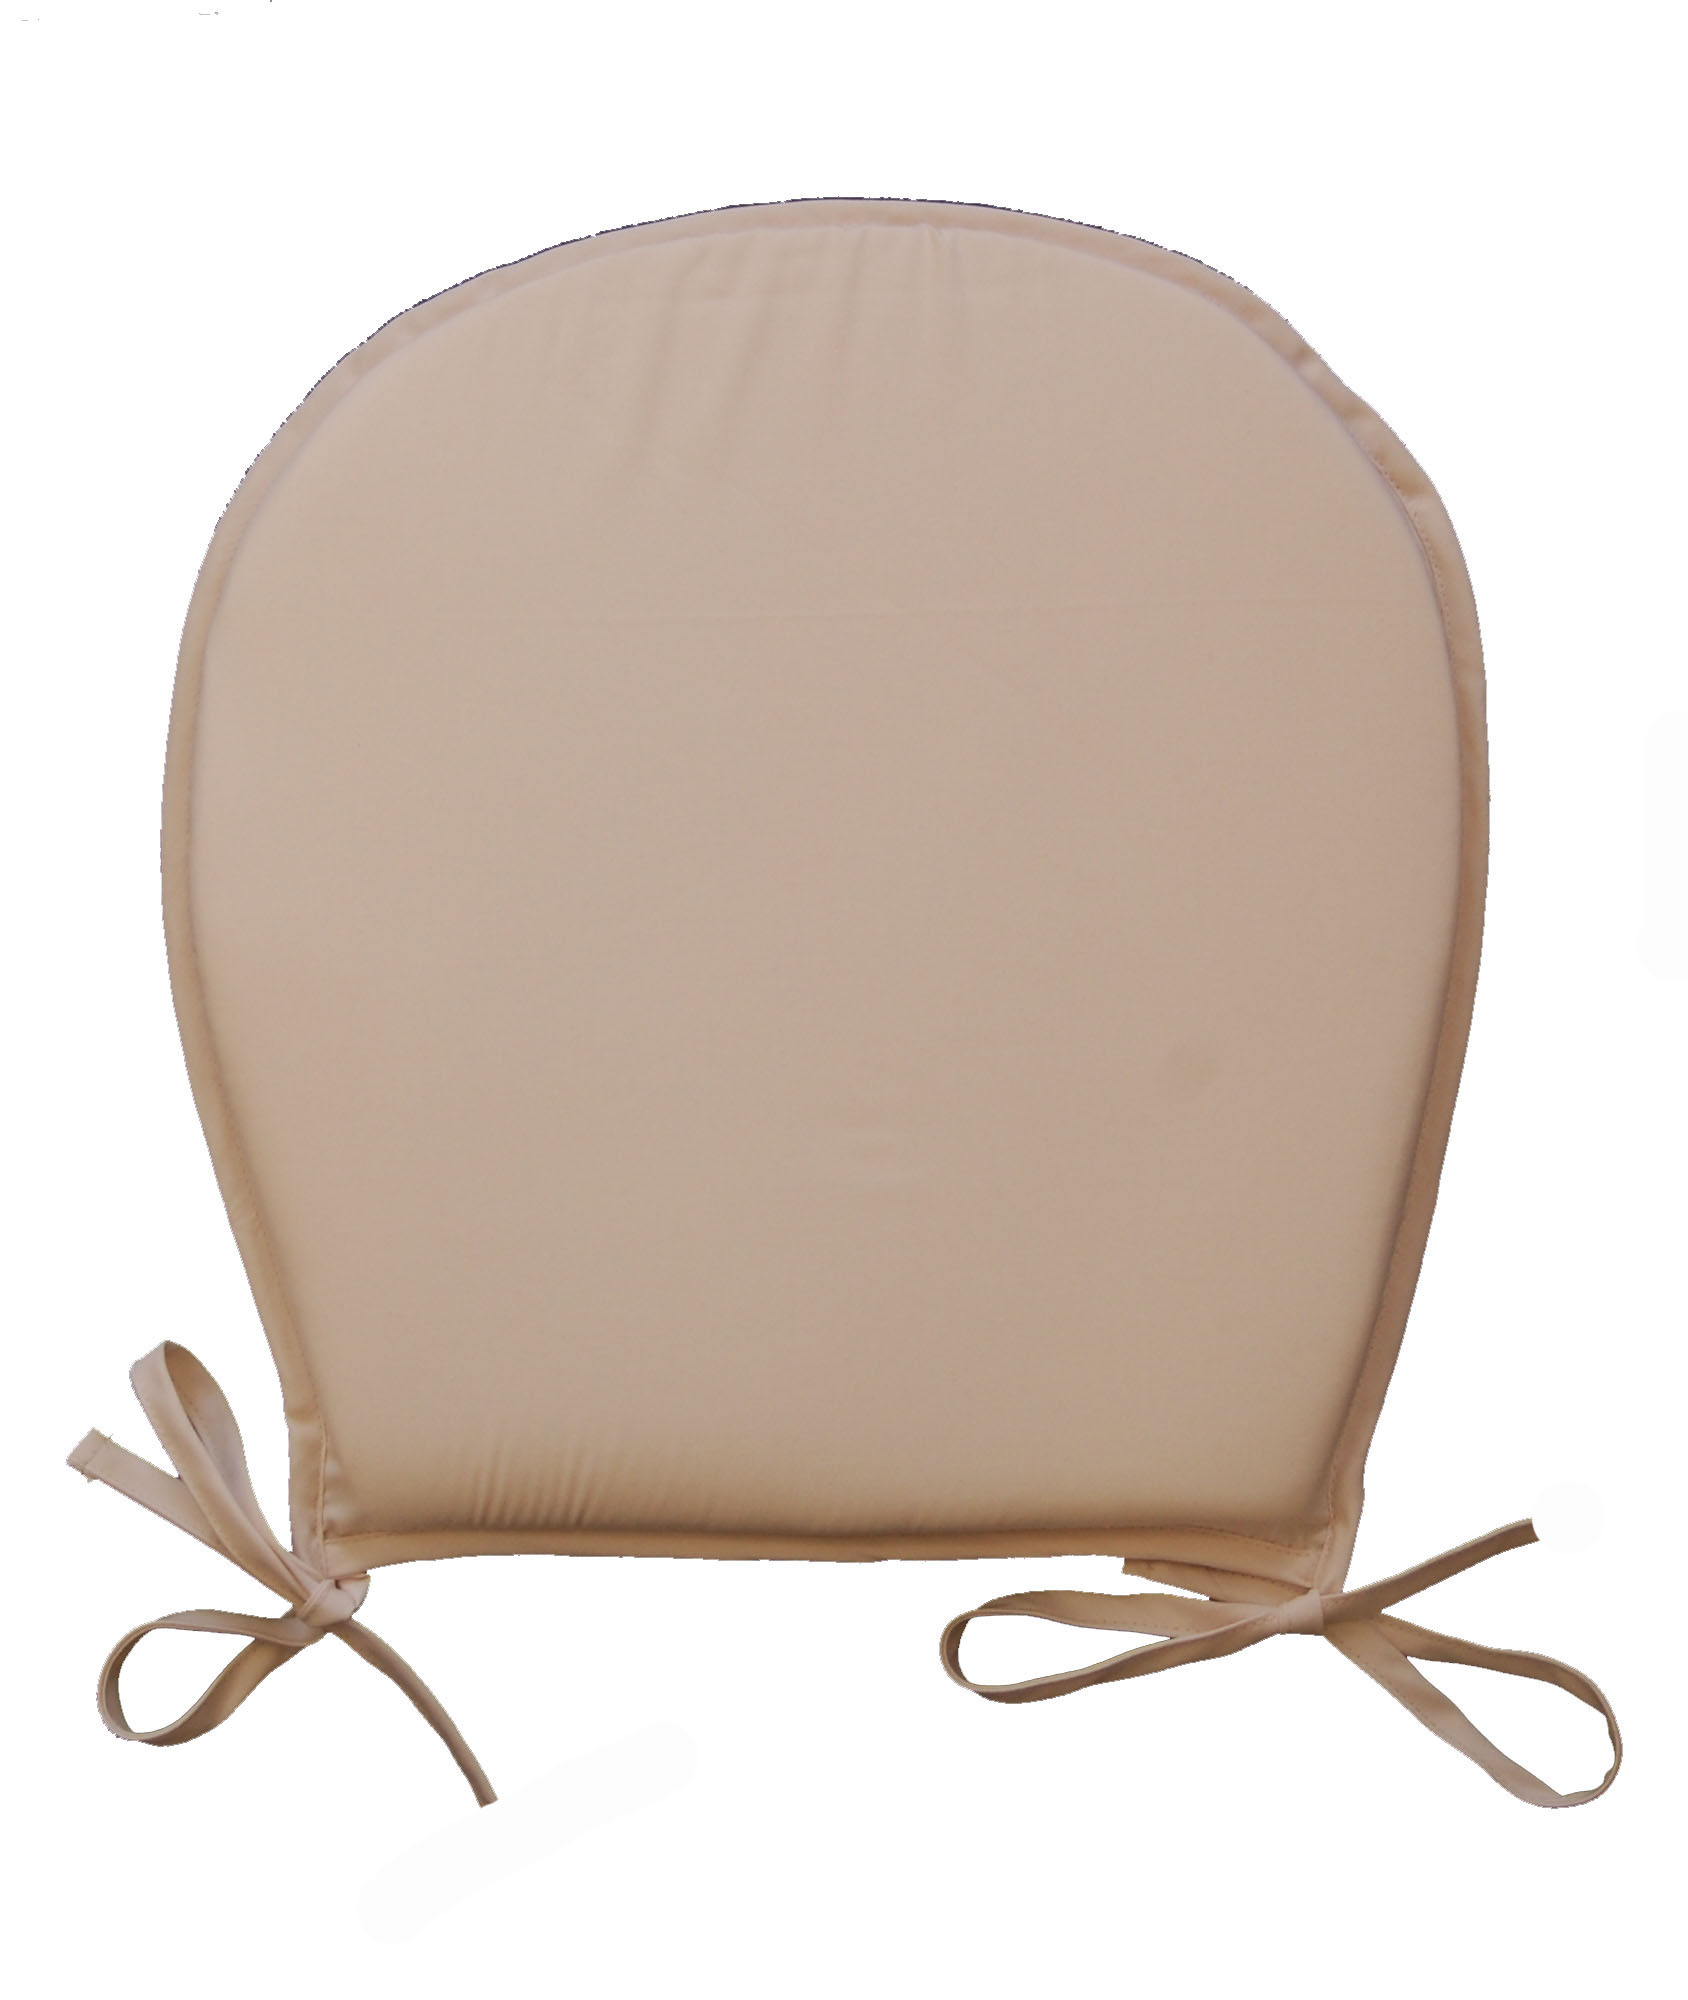 seat cushions for kitchen chairs cushions for kitchen chairs Seat cushions for kitchen chairs Photo 6